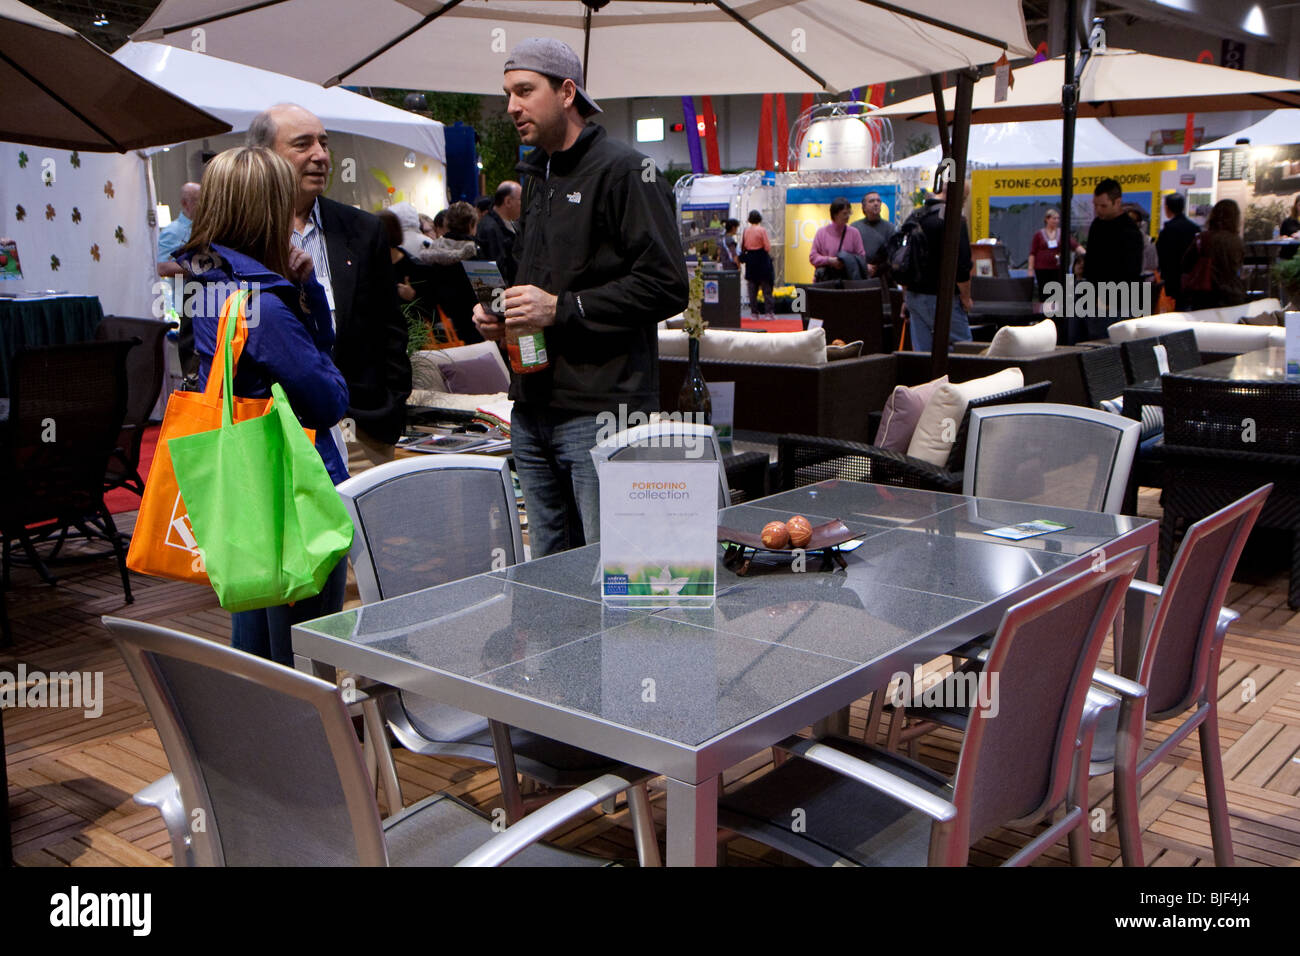 Canada bloom buy buyers buying couple event flower furniture garden patio sales salesman sell shop shopper shoppers - Stock Image